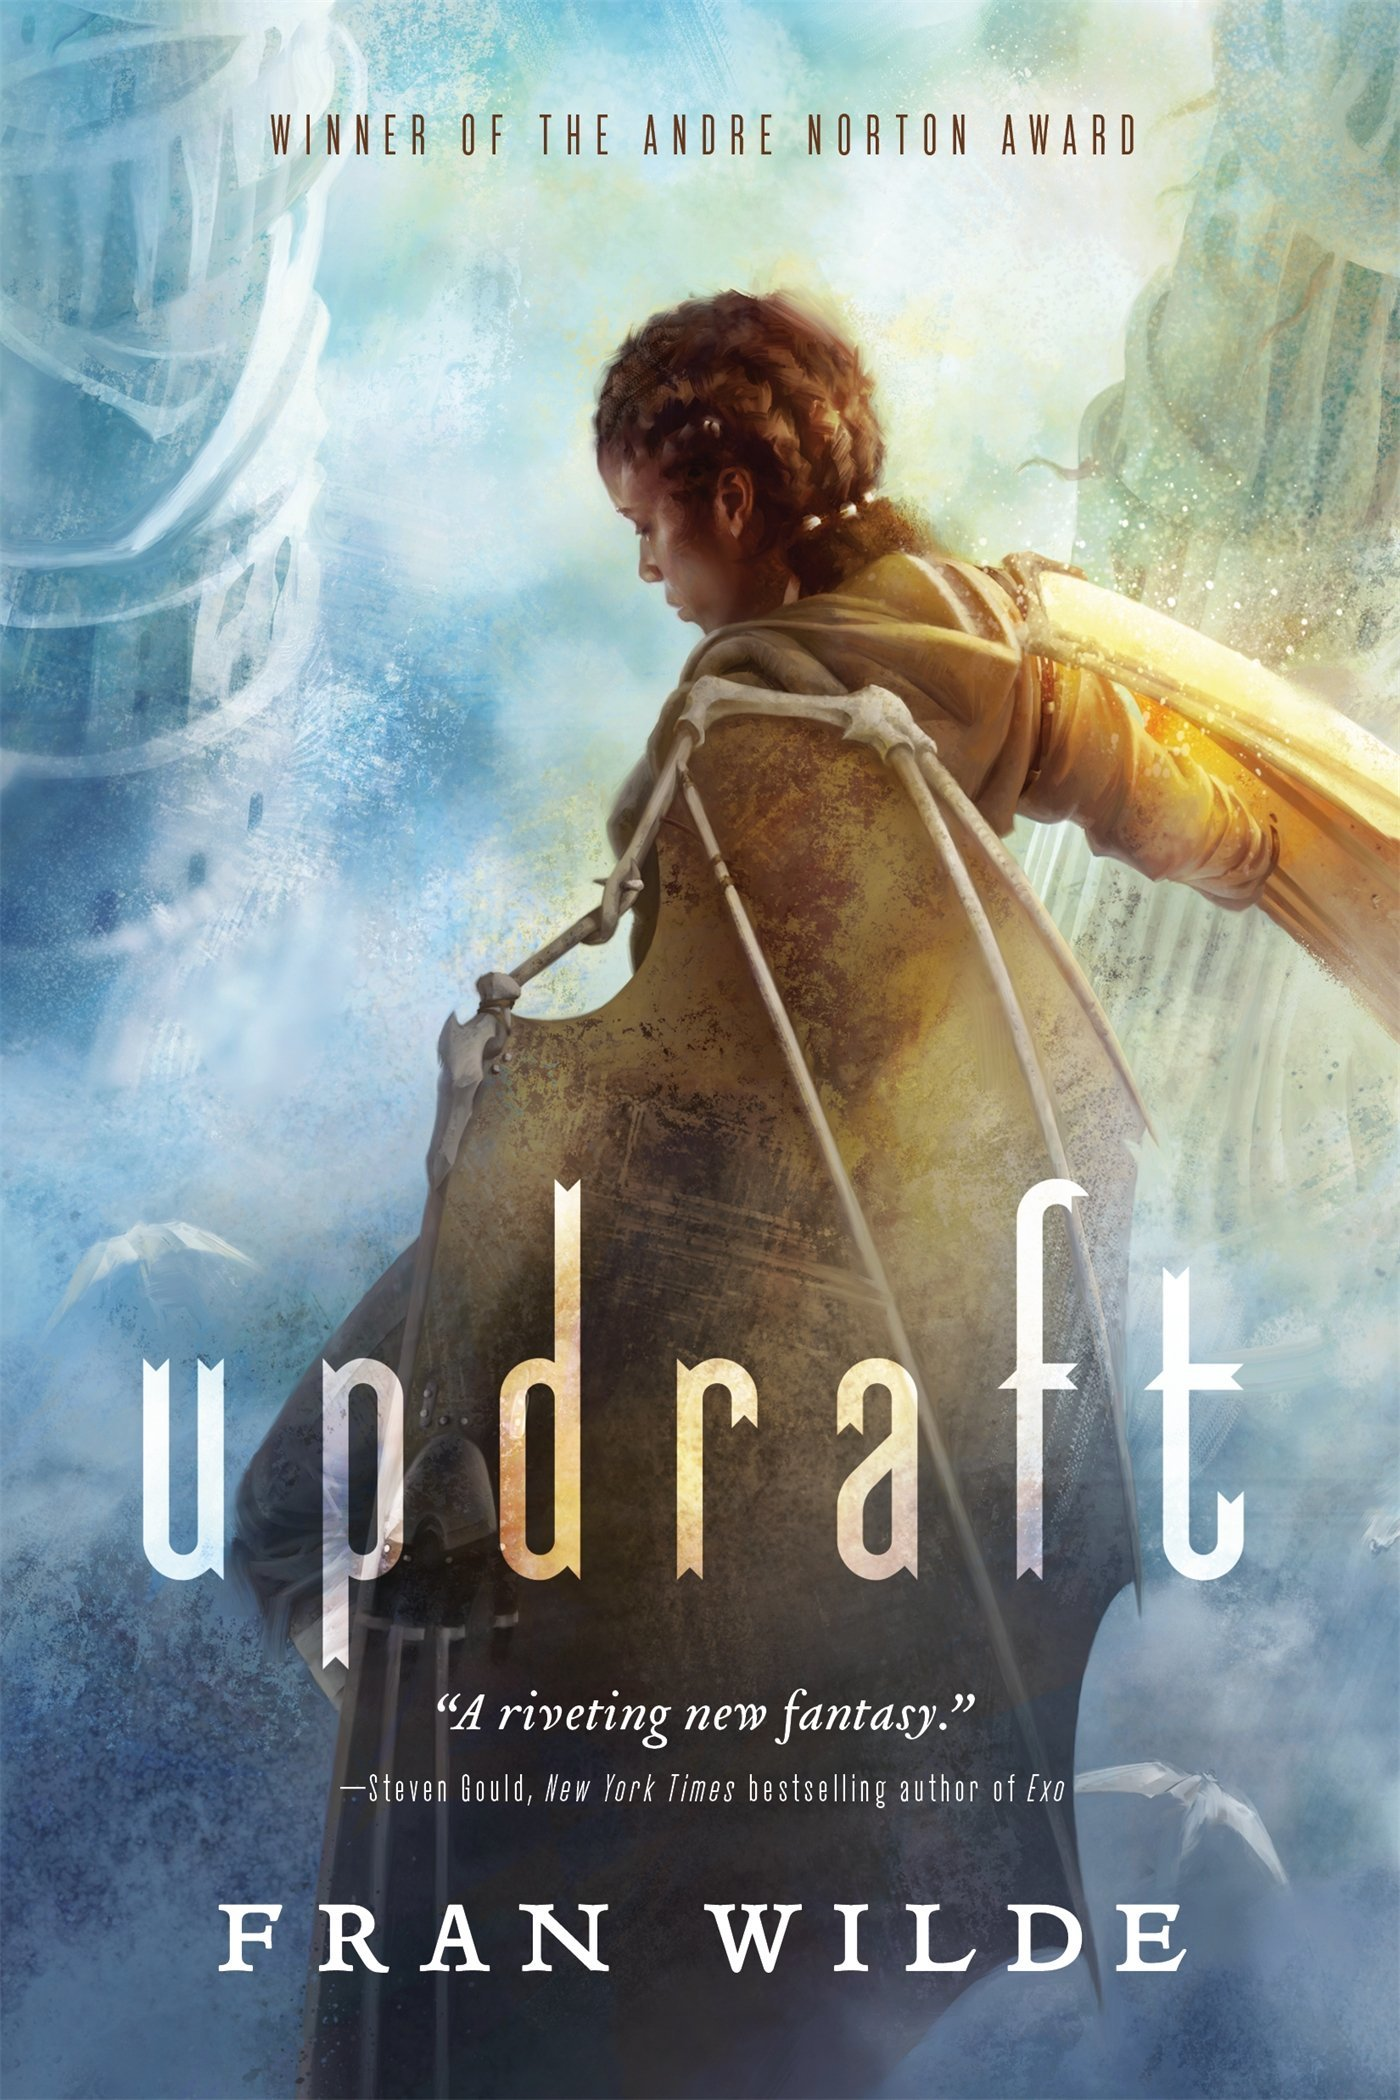 BWW Review: UPDRAFT by Fran Wilde